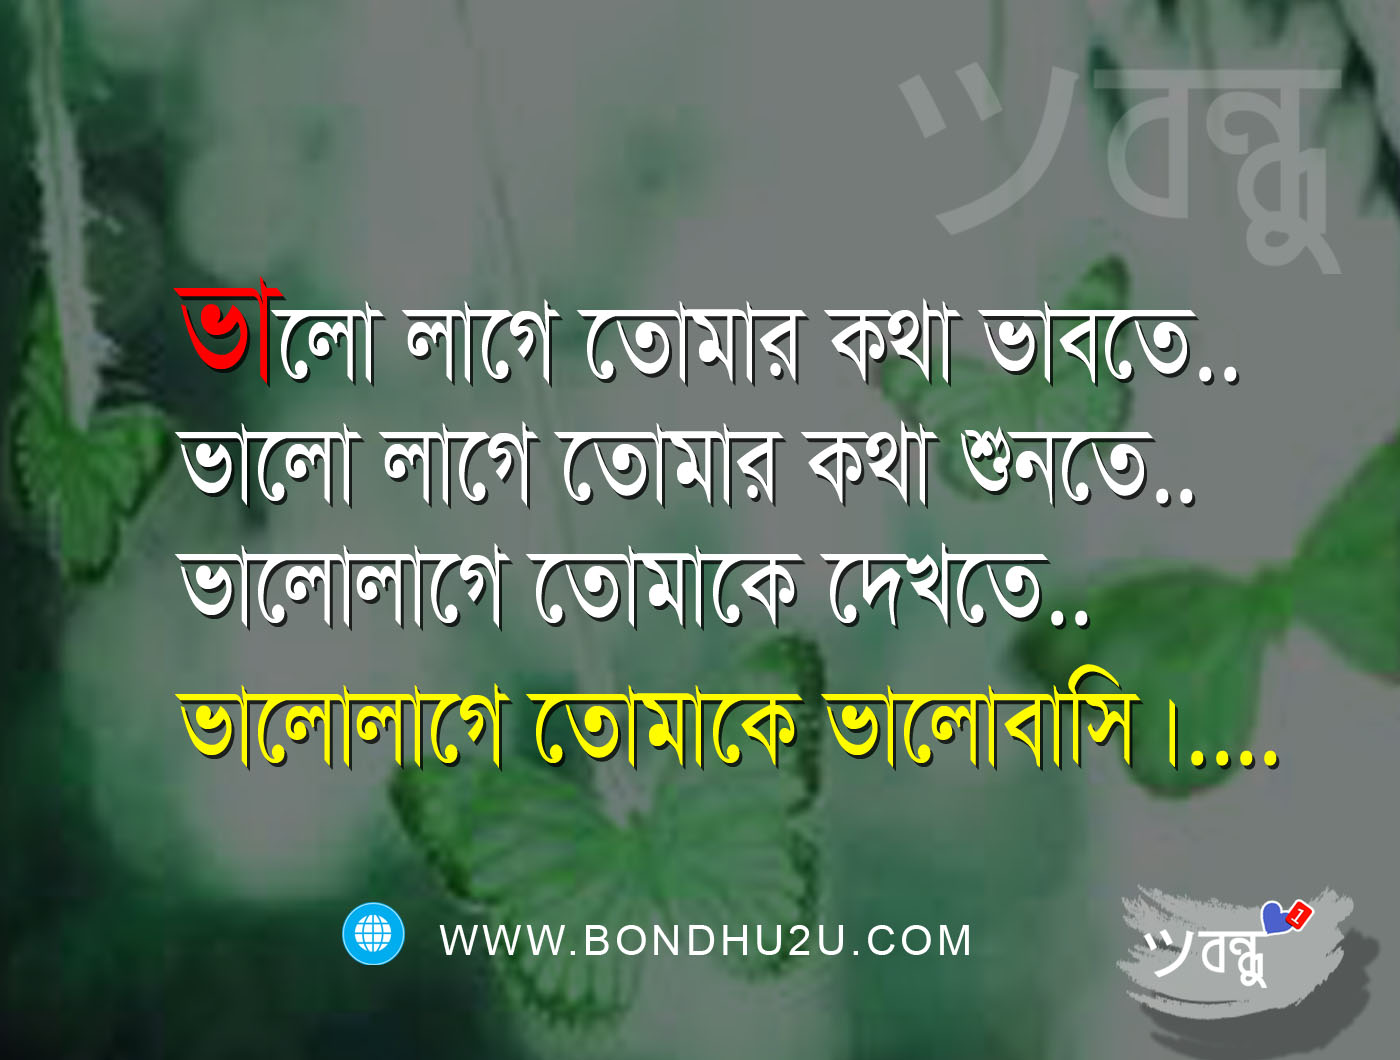 Bangla Love comment Wallpaper : bangla valobashar comment, bangla love image, bangla romantic kobita line,bangla romantic kobita ...